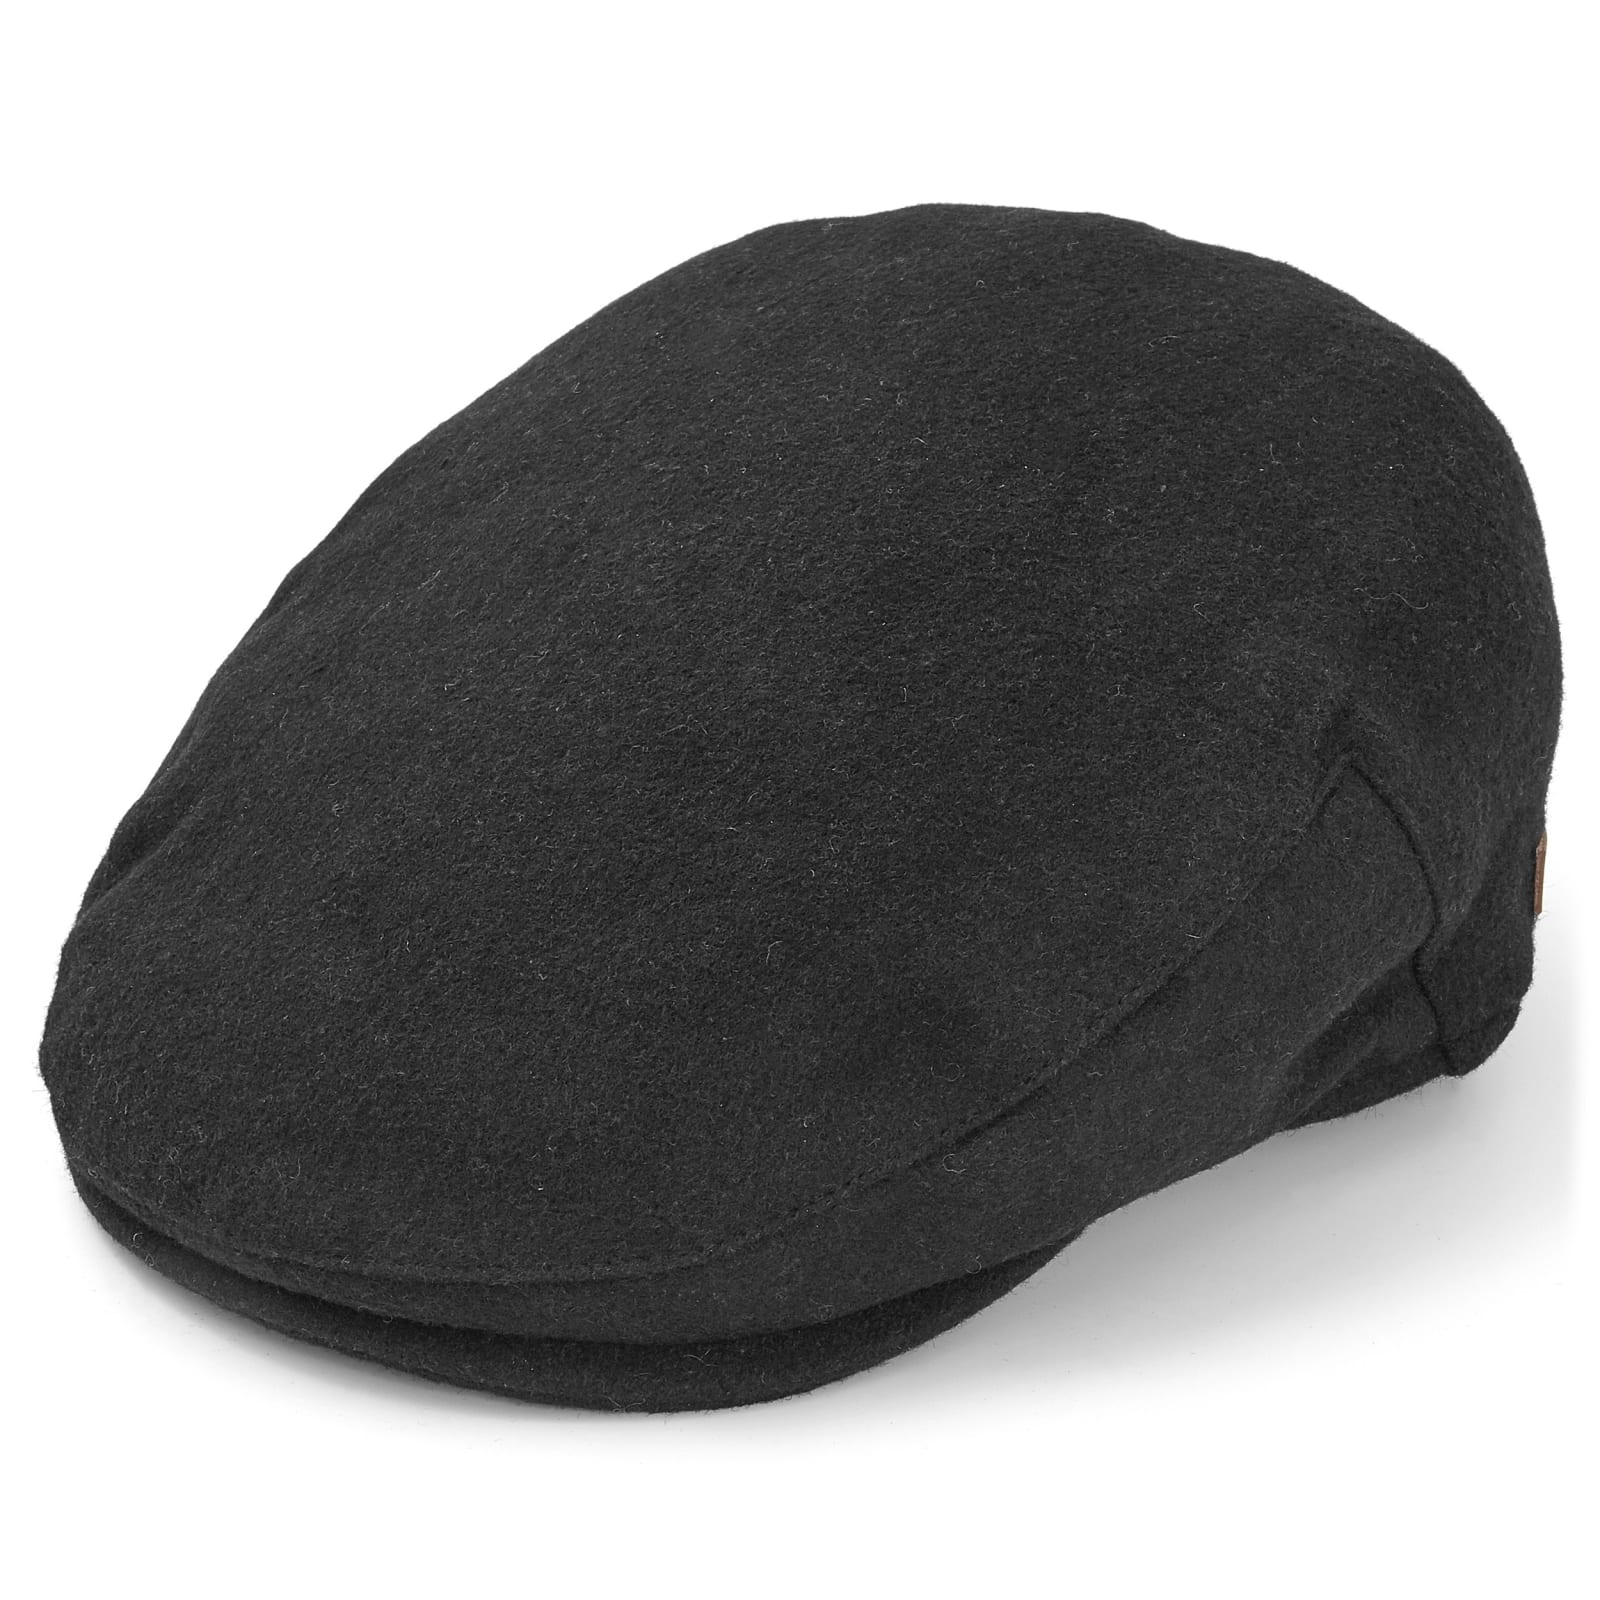 8ee6ed9e8fd6a Black Wool Flat Cap | Major Wear | In stock!